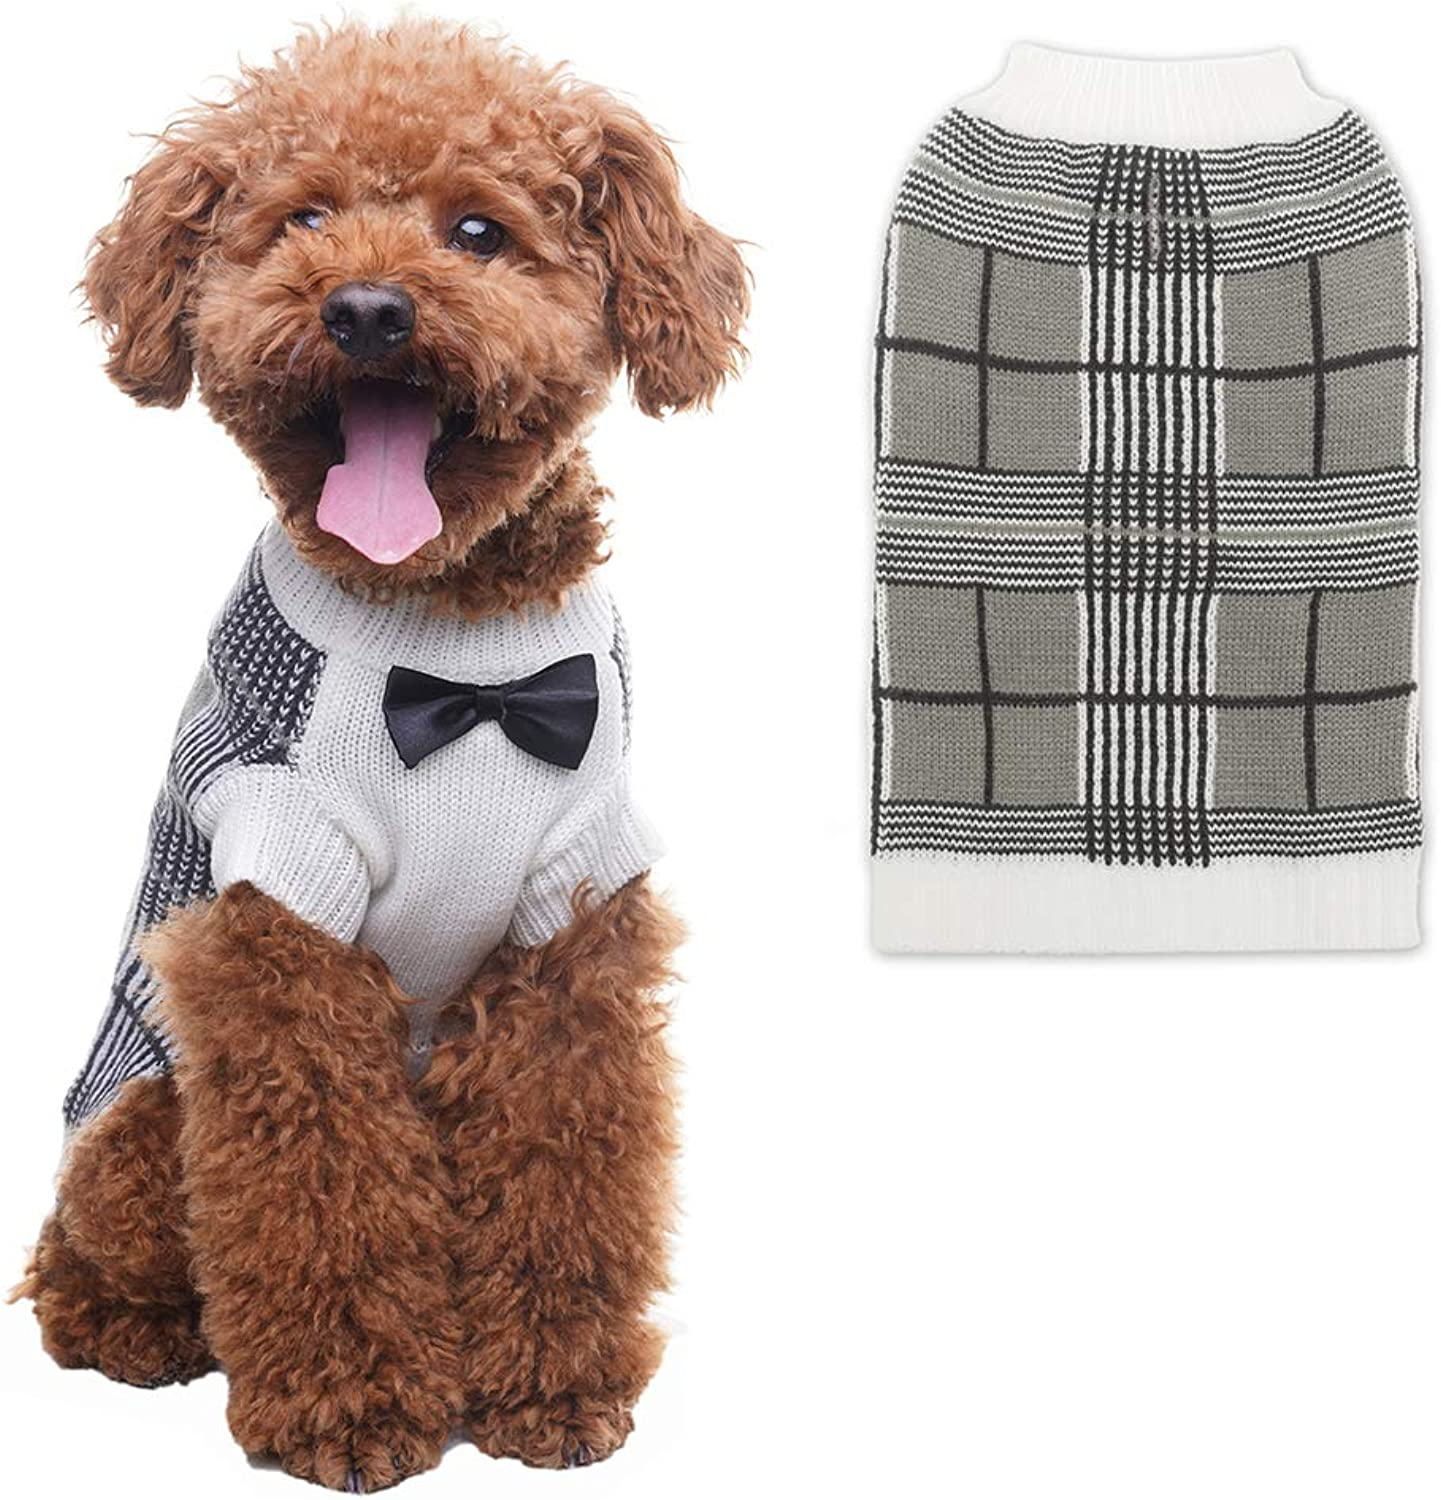 OFPUPPY Dog Sweater with Bow Tie Gentleman Style Pet Decent Winter Clothes for Both Girl and Boy Puppies